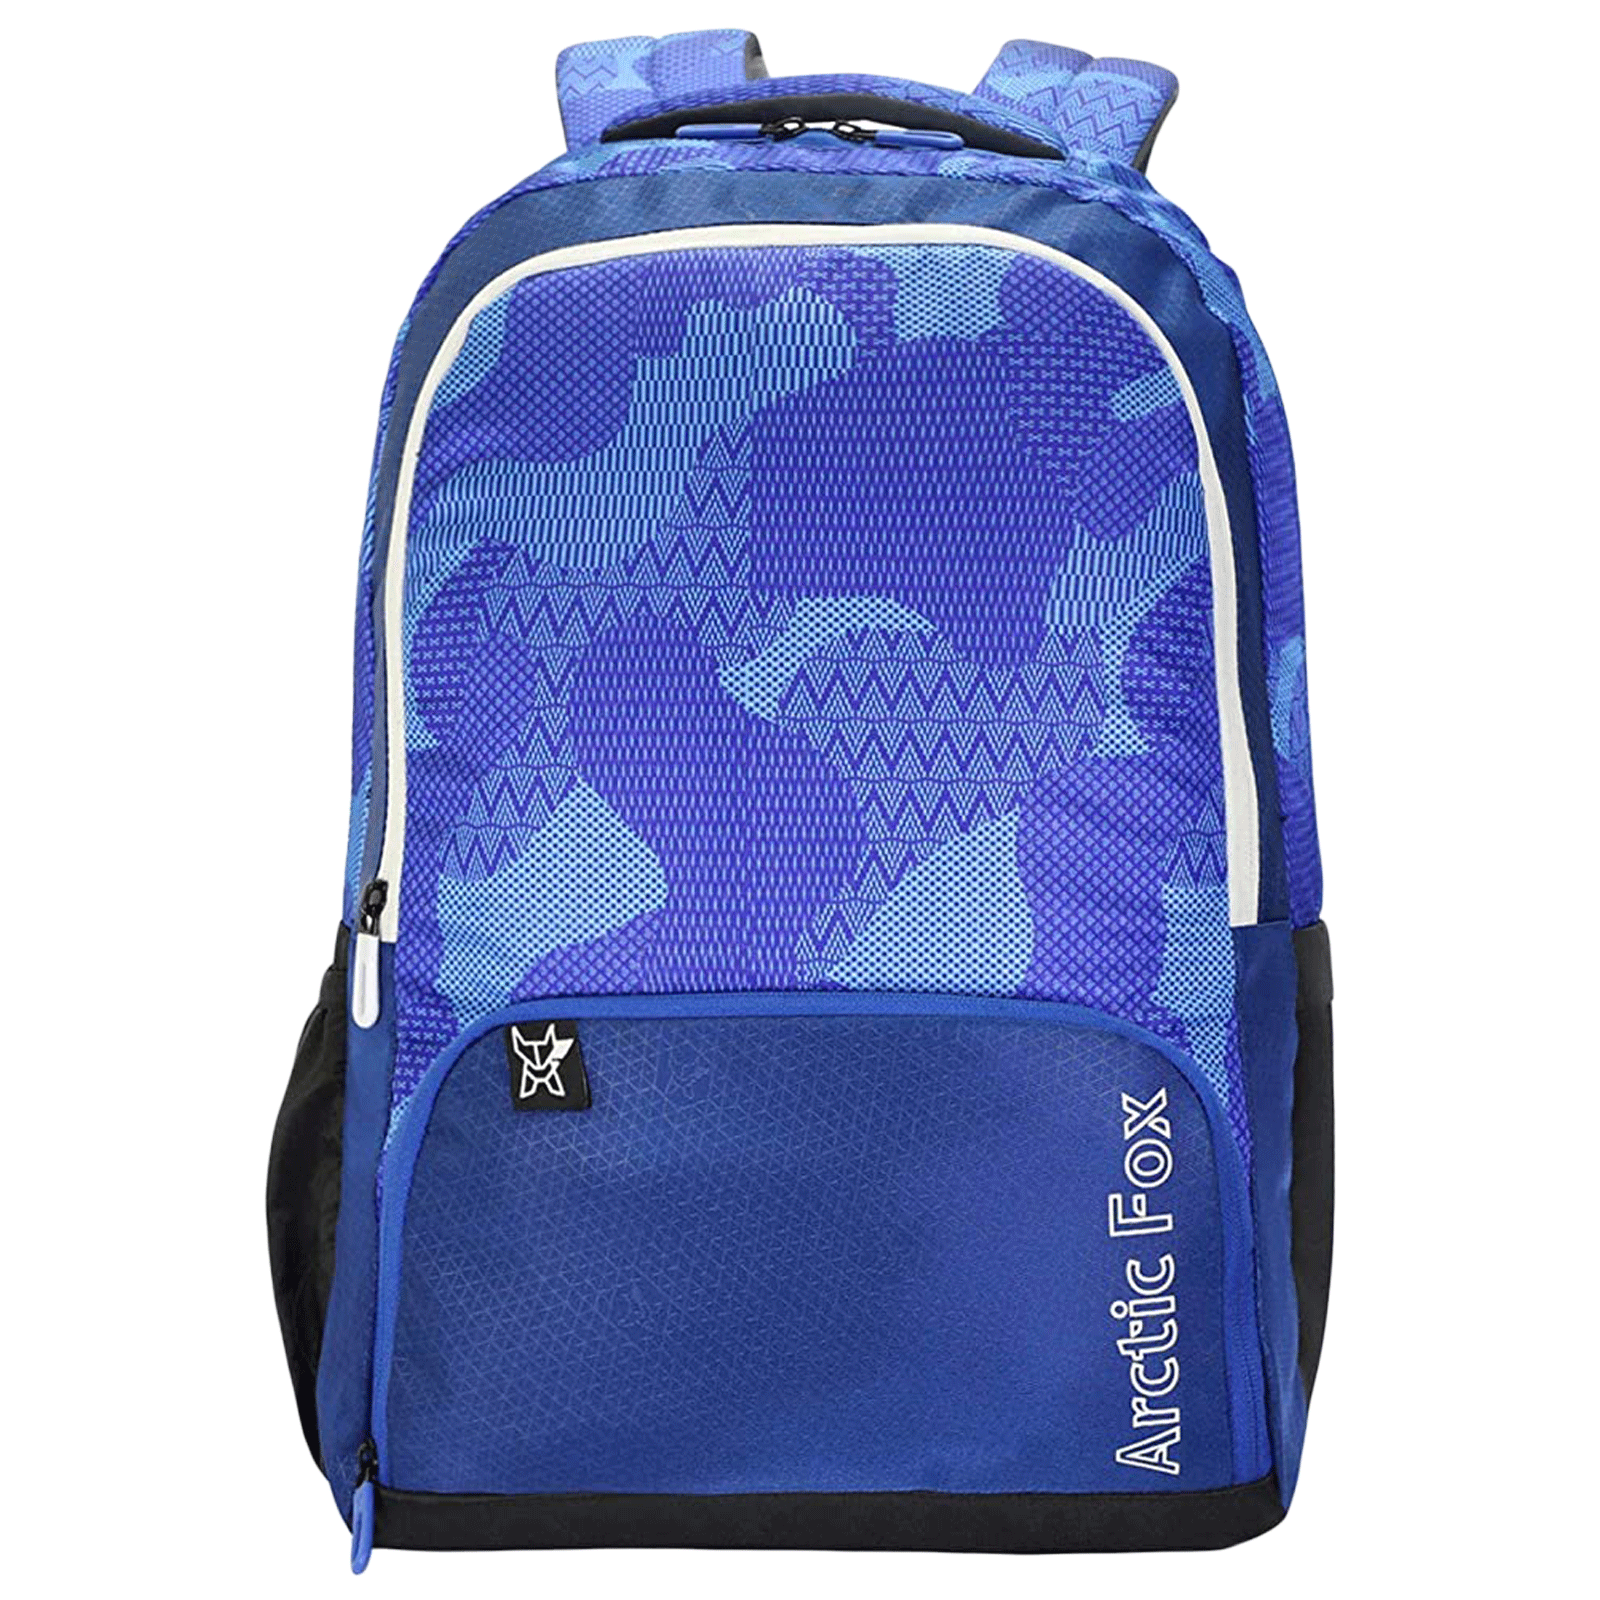 Arctic Fox Collage 32 Litres PU Coated Polyester Laptop Backpack (Smart Organizer, FUNBPKDTBON093032, Blue)_1